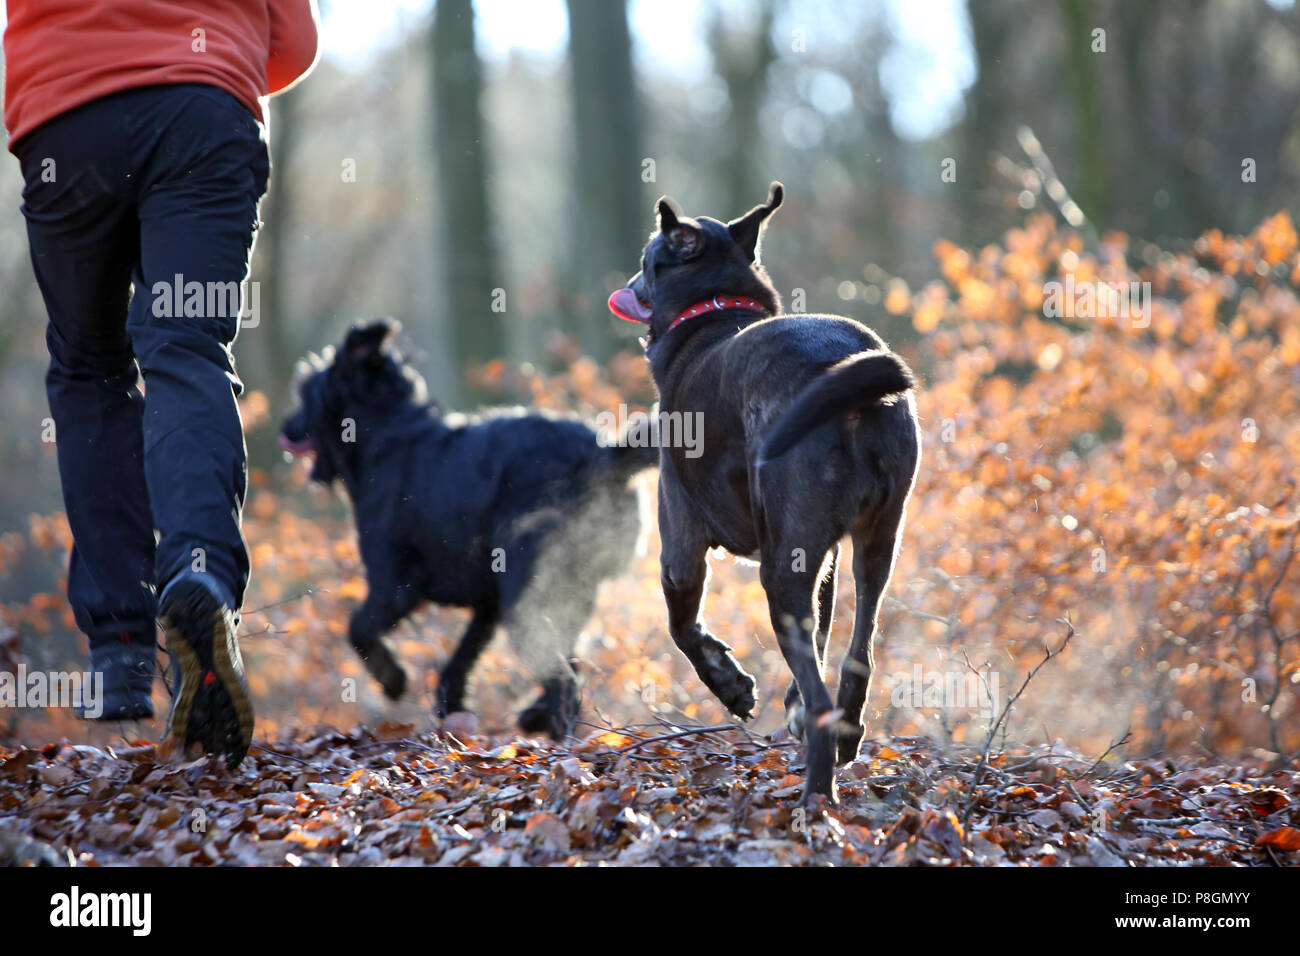 New Kaetwin, Germany, symbol photo, jogging in the woods with dogs - Stock Image